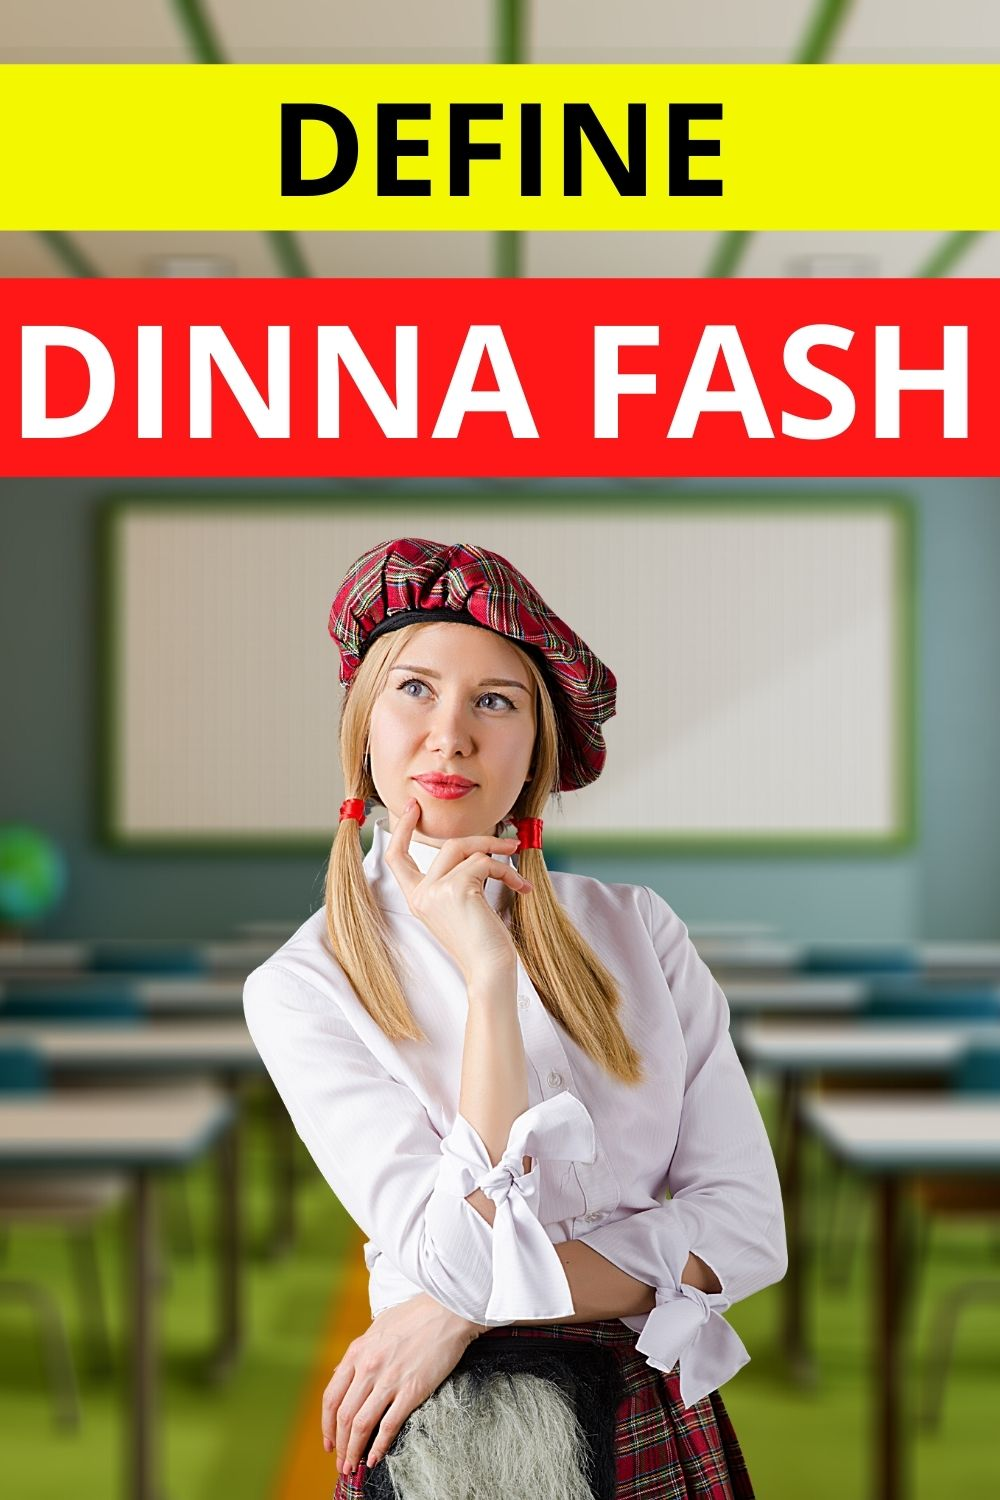 Dinna Fash Meaning